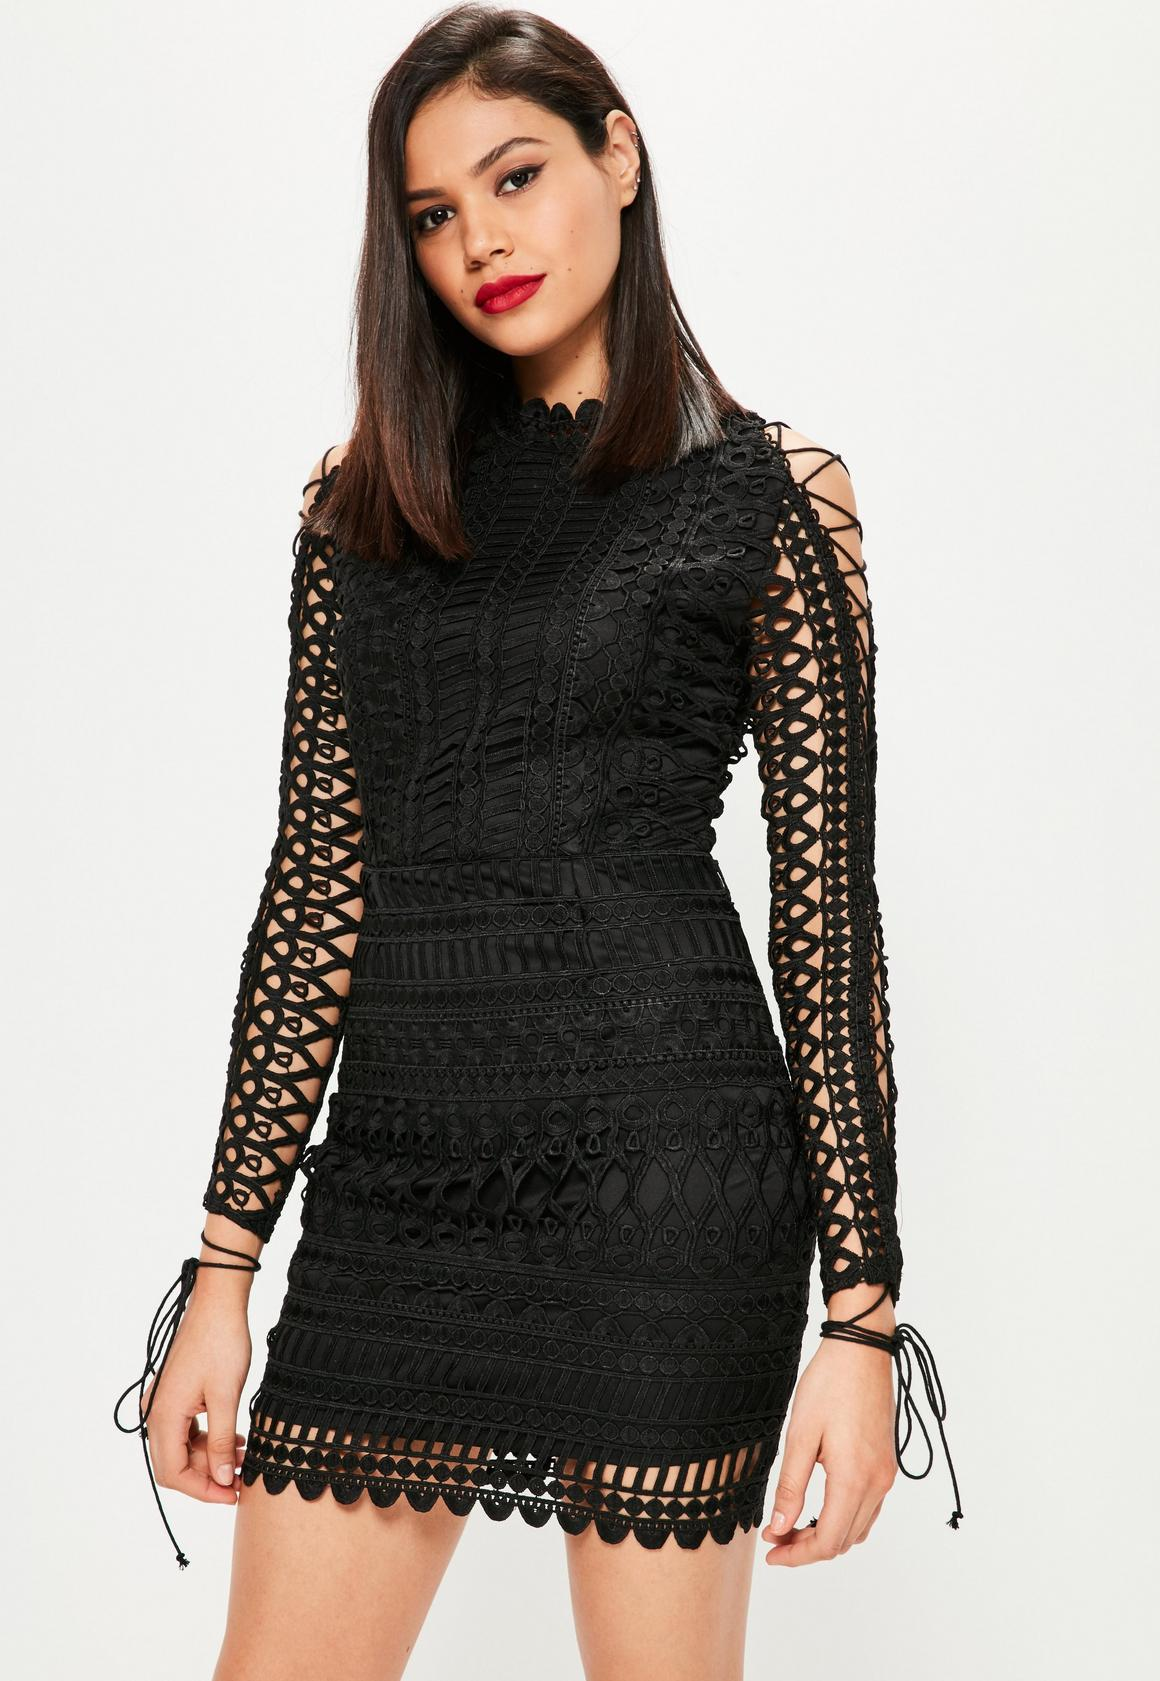 Black dress lace sleeves - Black Lace High Neck Lace Up Sleeve Bodycon Dress